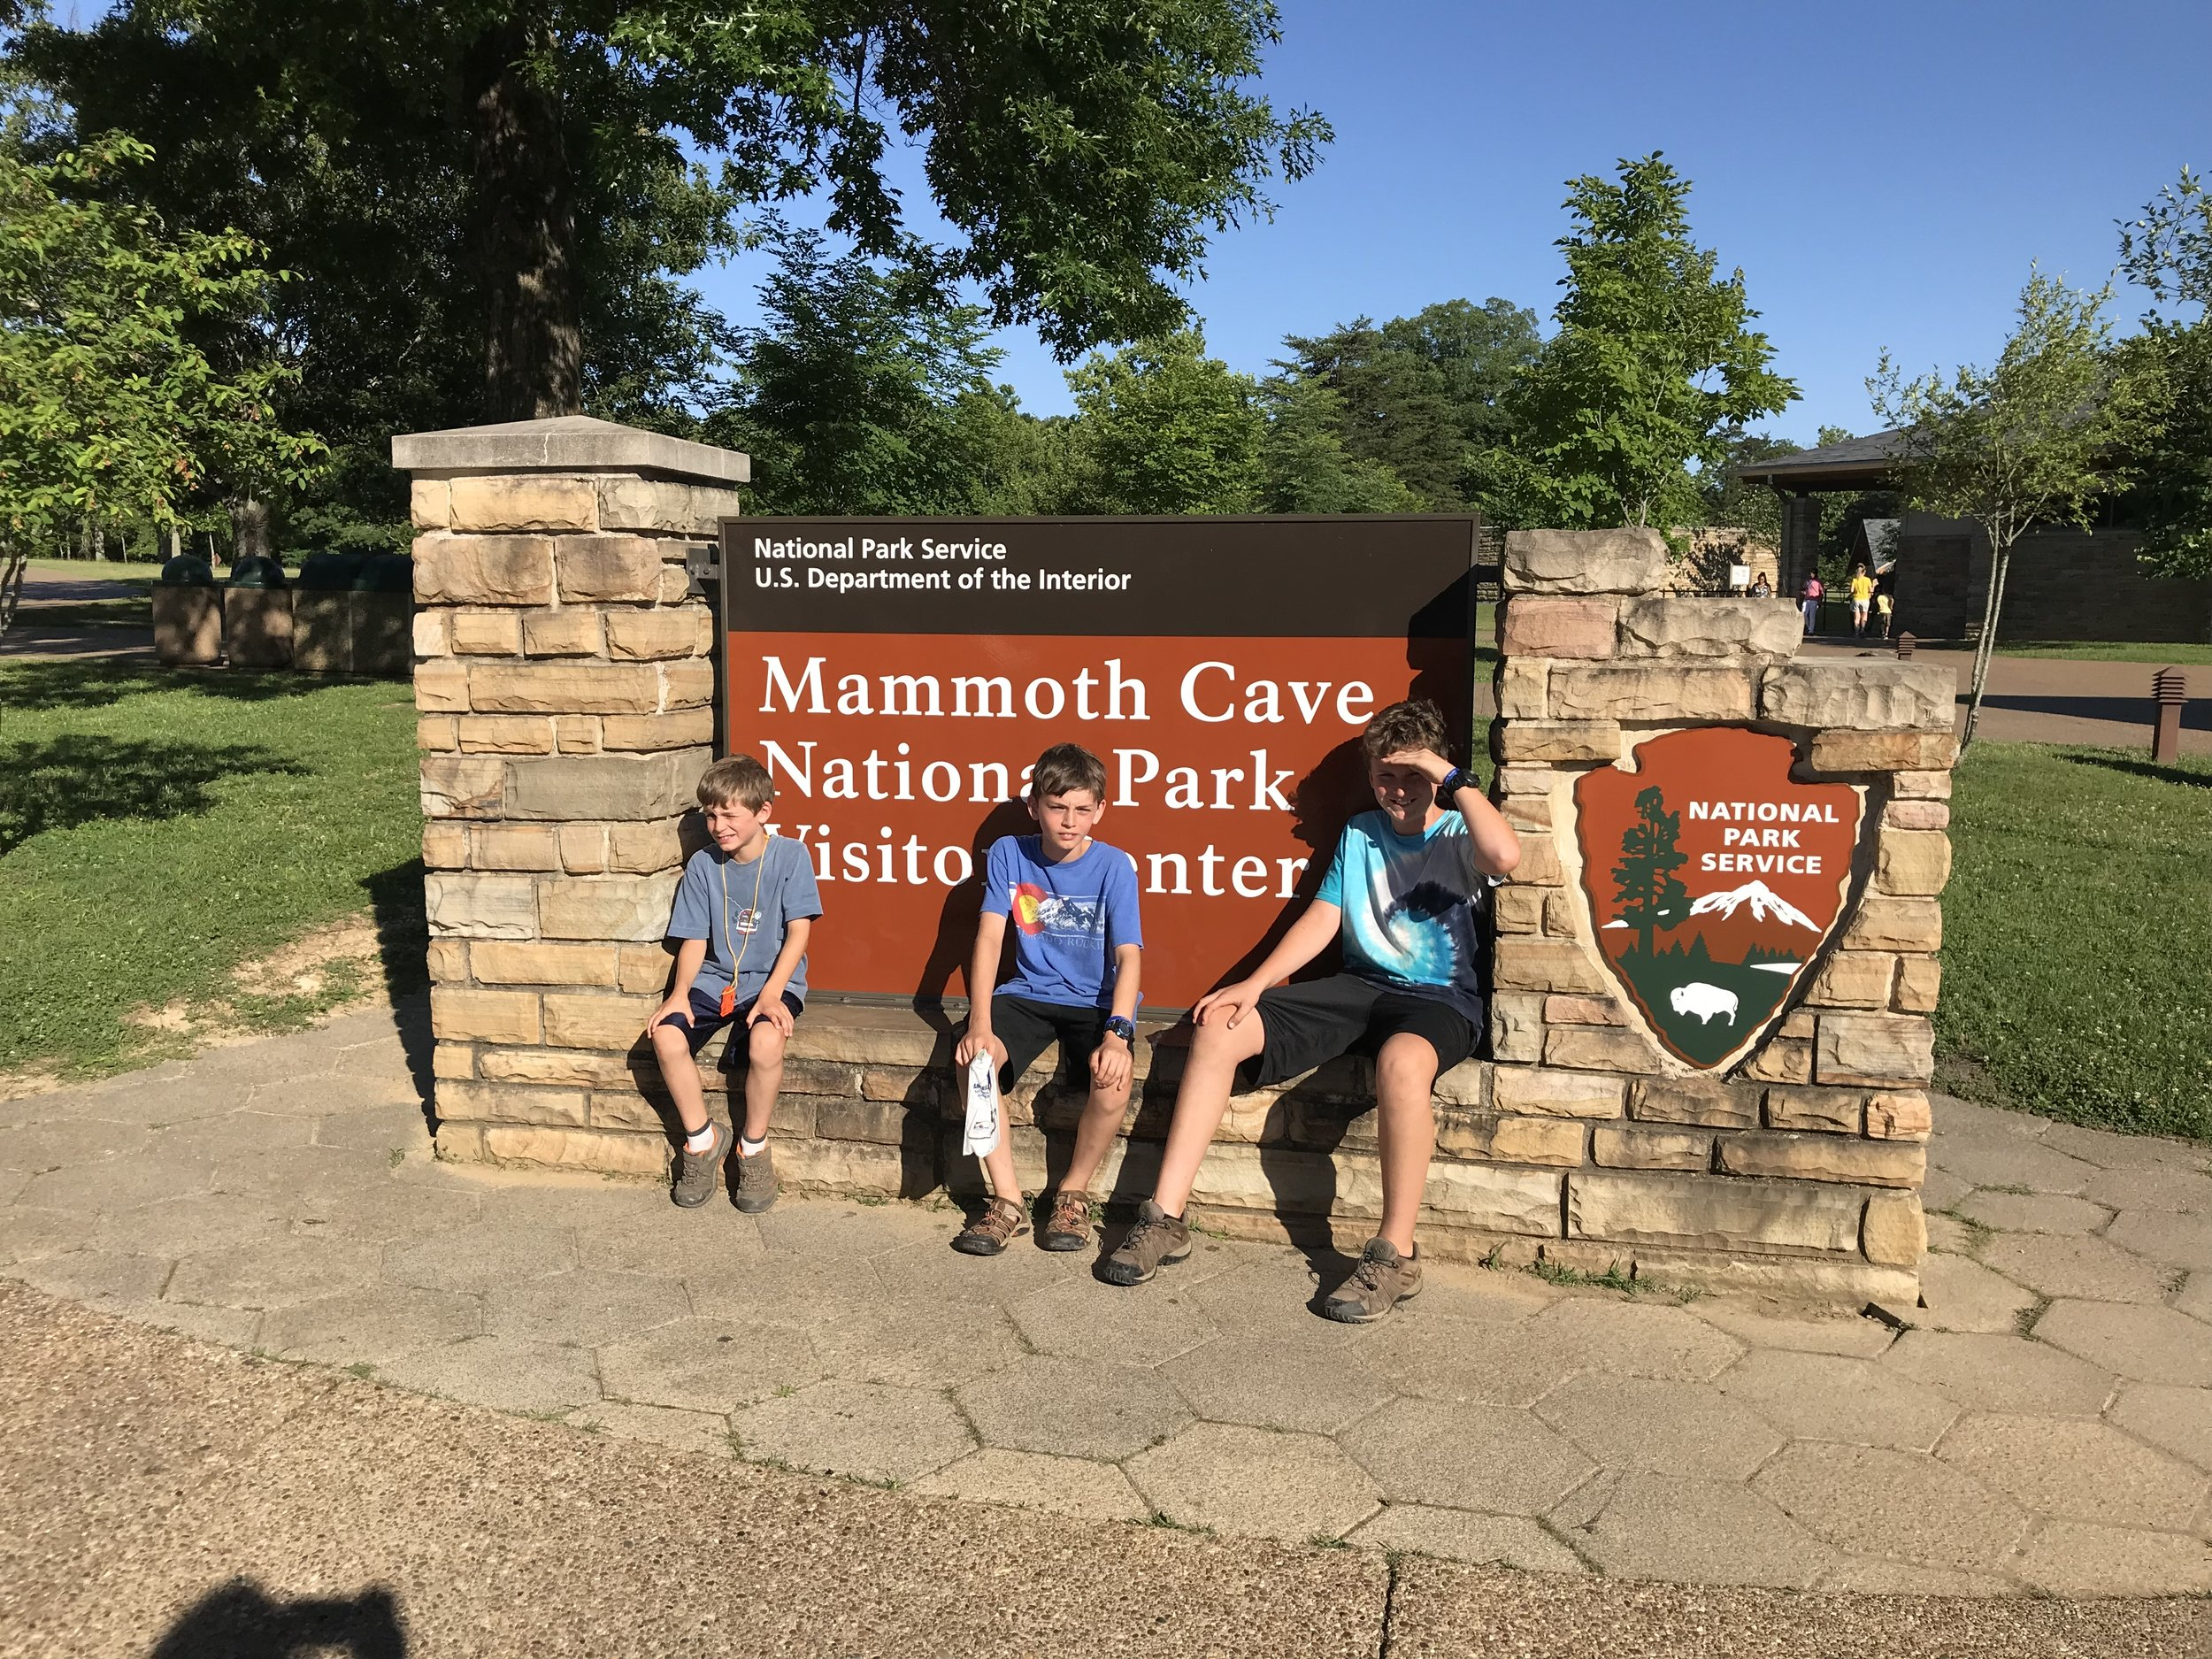 One of our milestones and anticipatory places: Mammoth Cave!